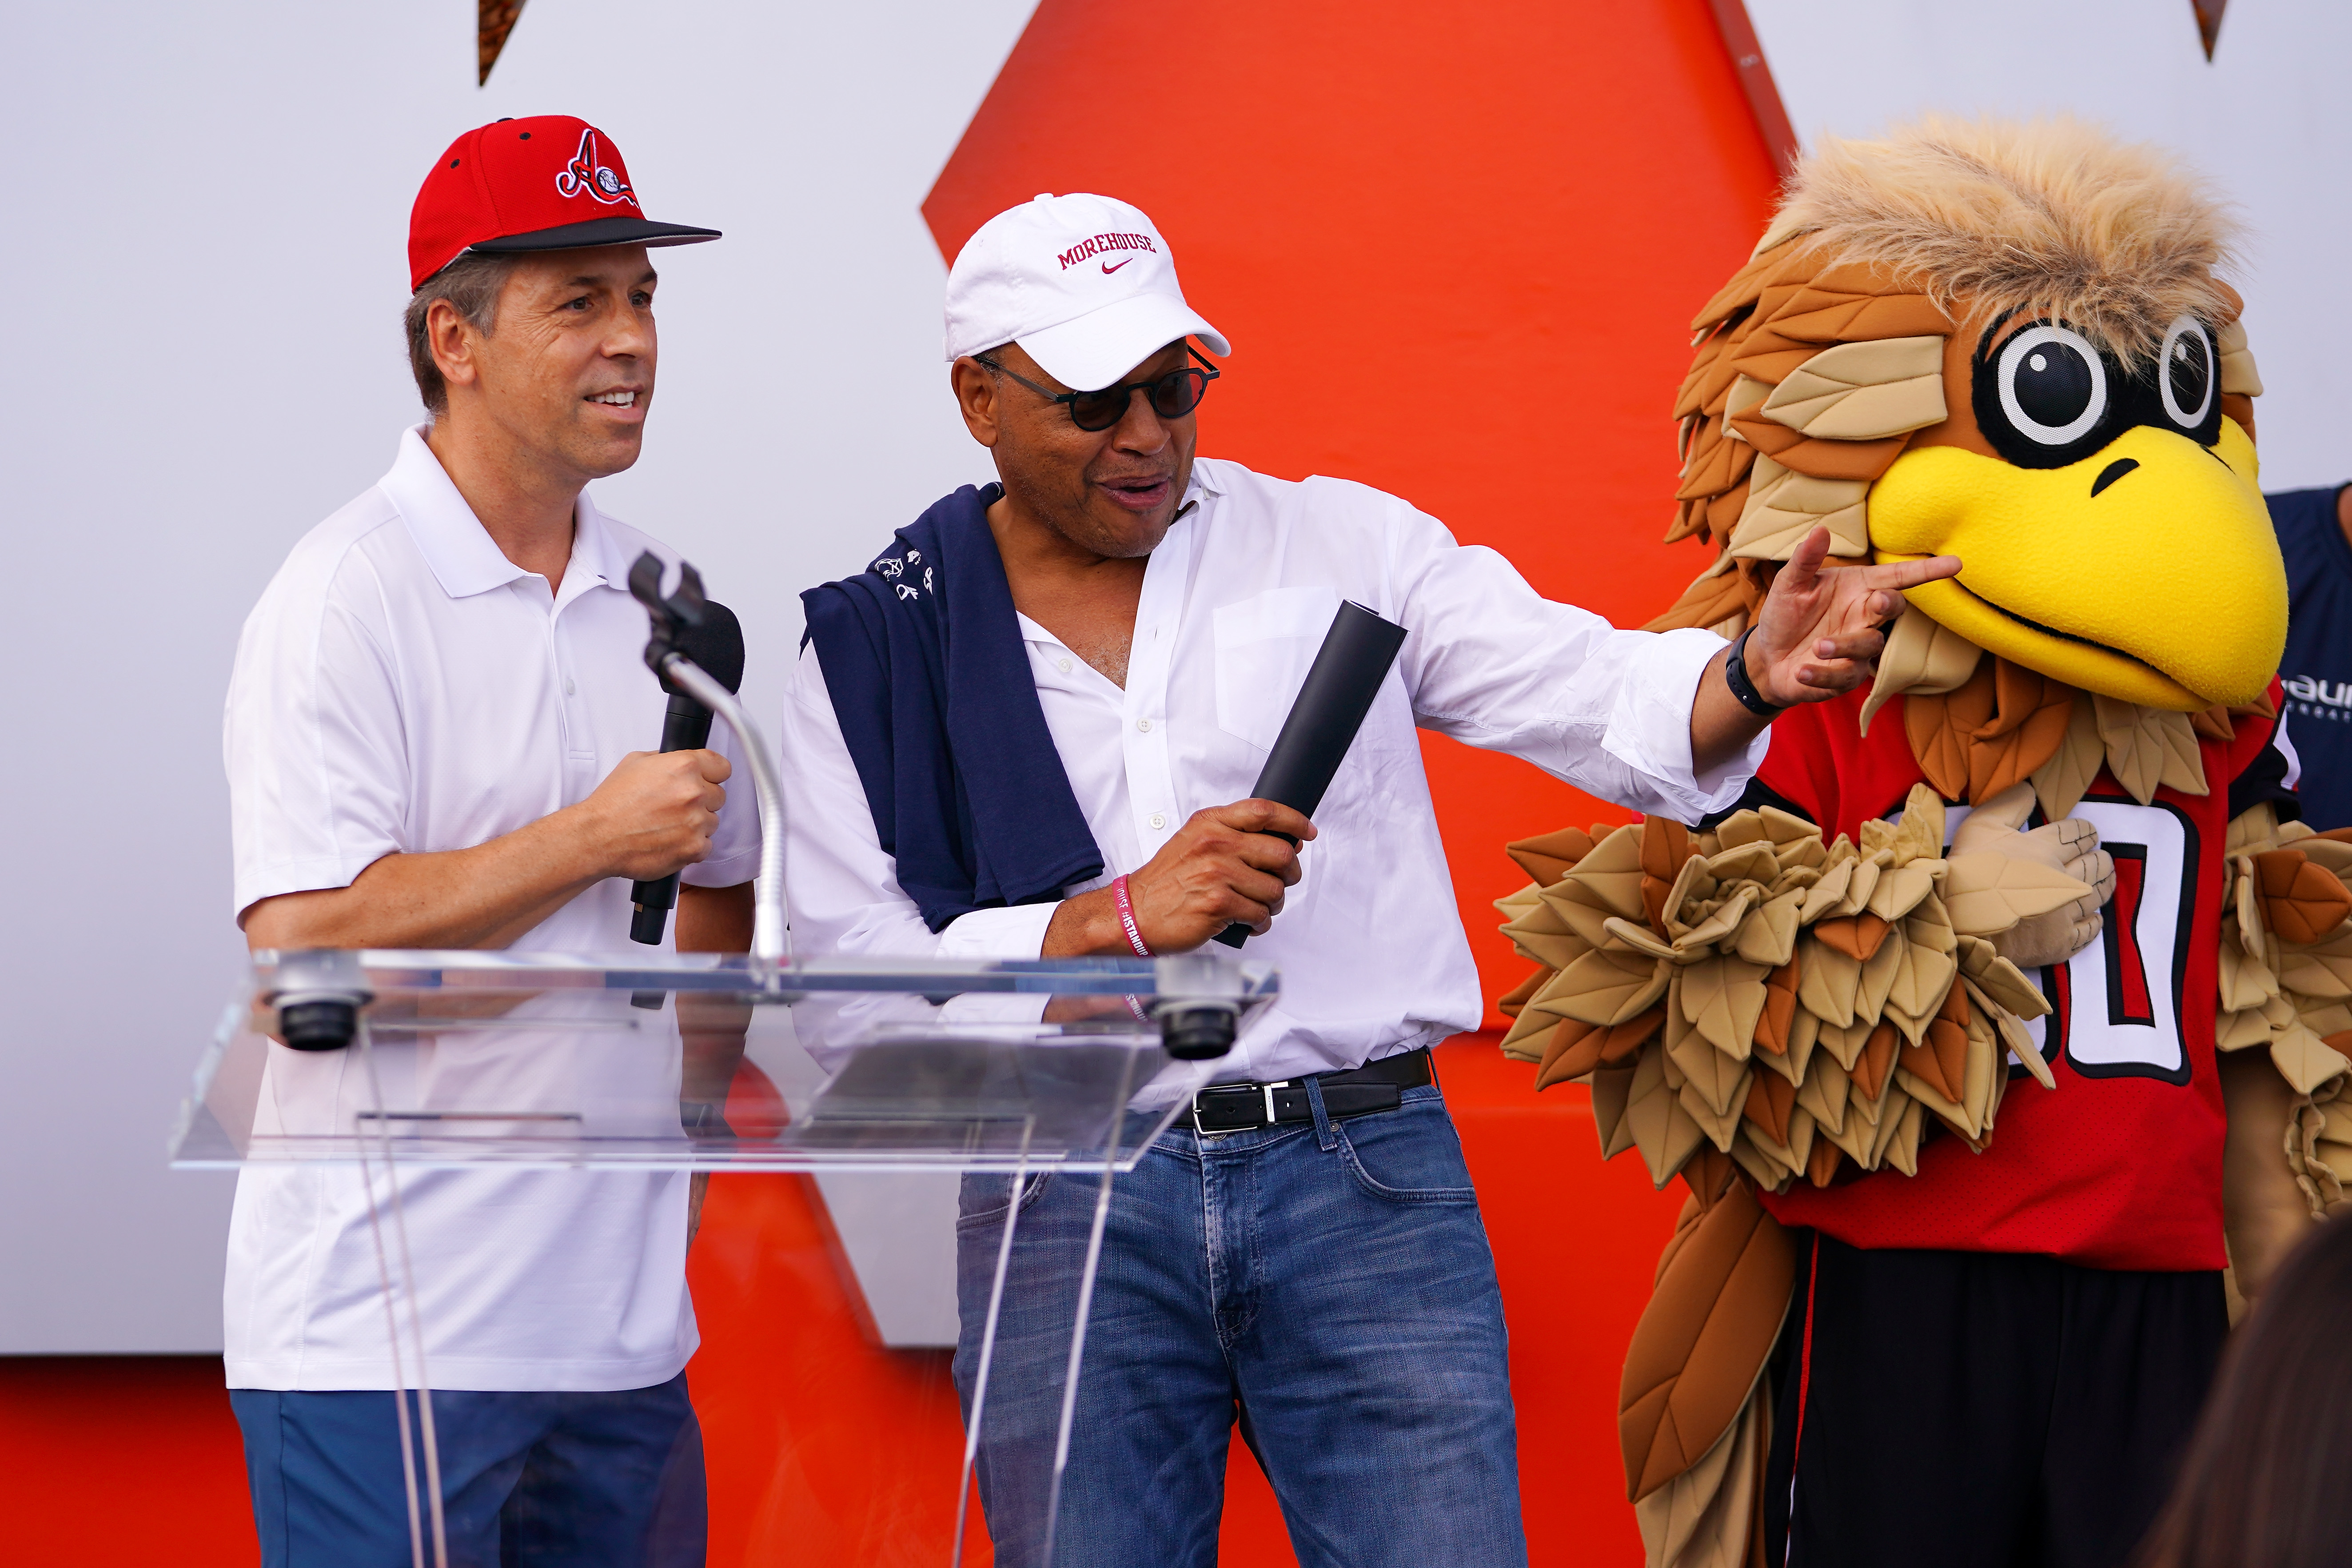 CEO and President at Mercedes-Benz USA Dietmar Exler and David A. Thomas, President of Morehouse College, speak during the Laureus Sport for Good Atlanta Day of Sport on September 29, 2018 in Atlanta, Georgia. (Photo by Daniel Shirey/Getty Images for Laureus)